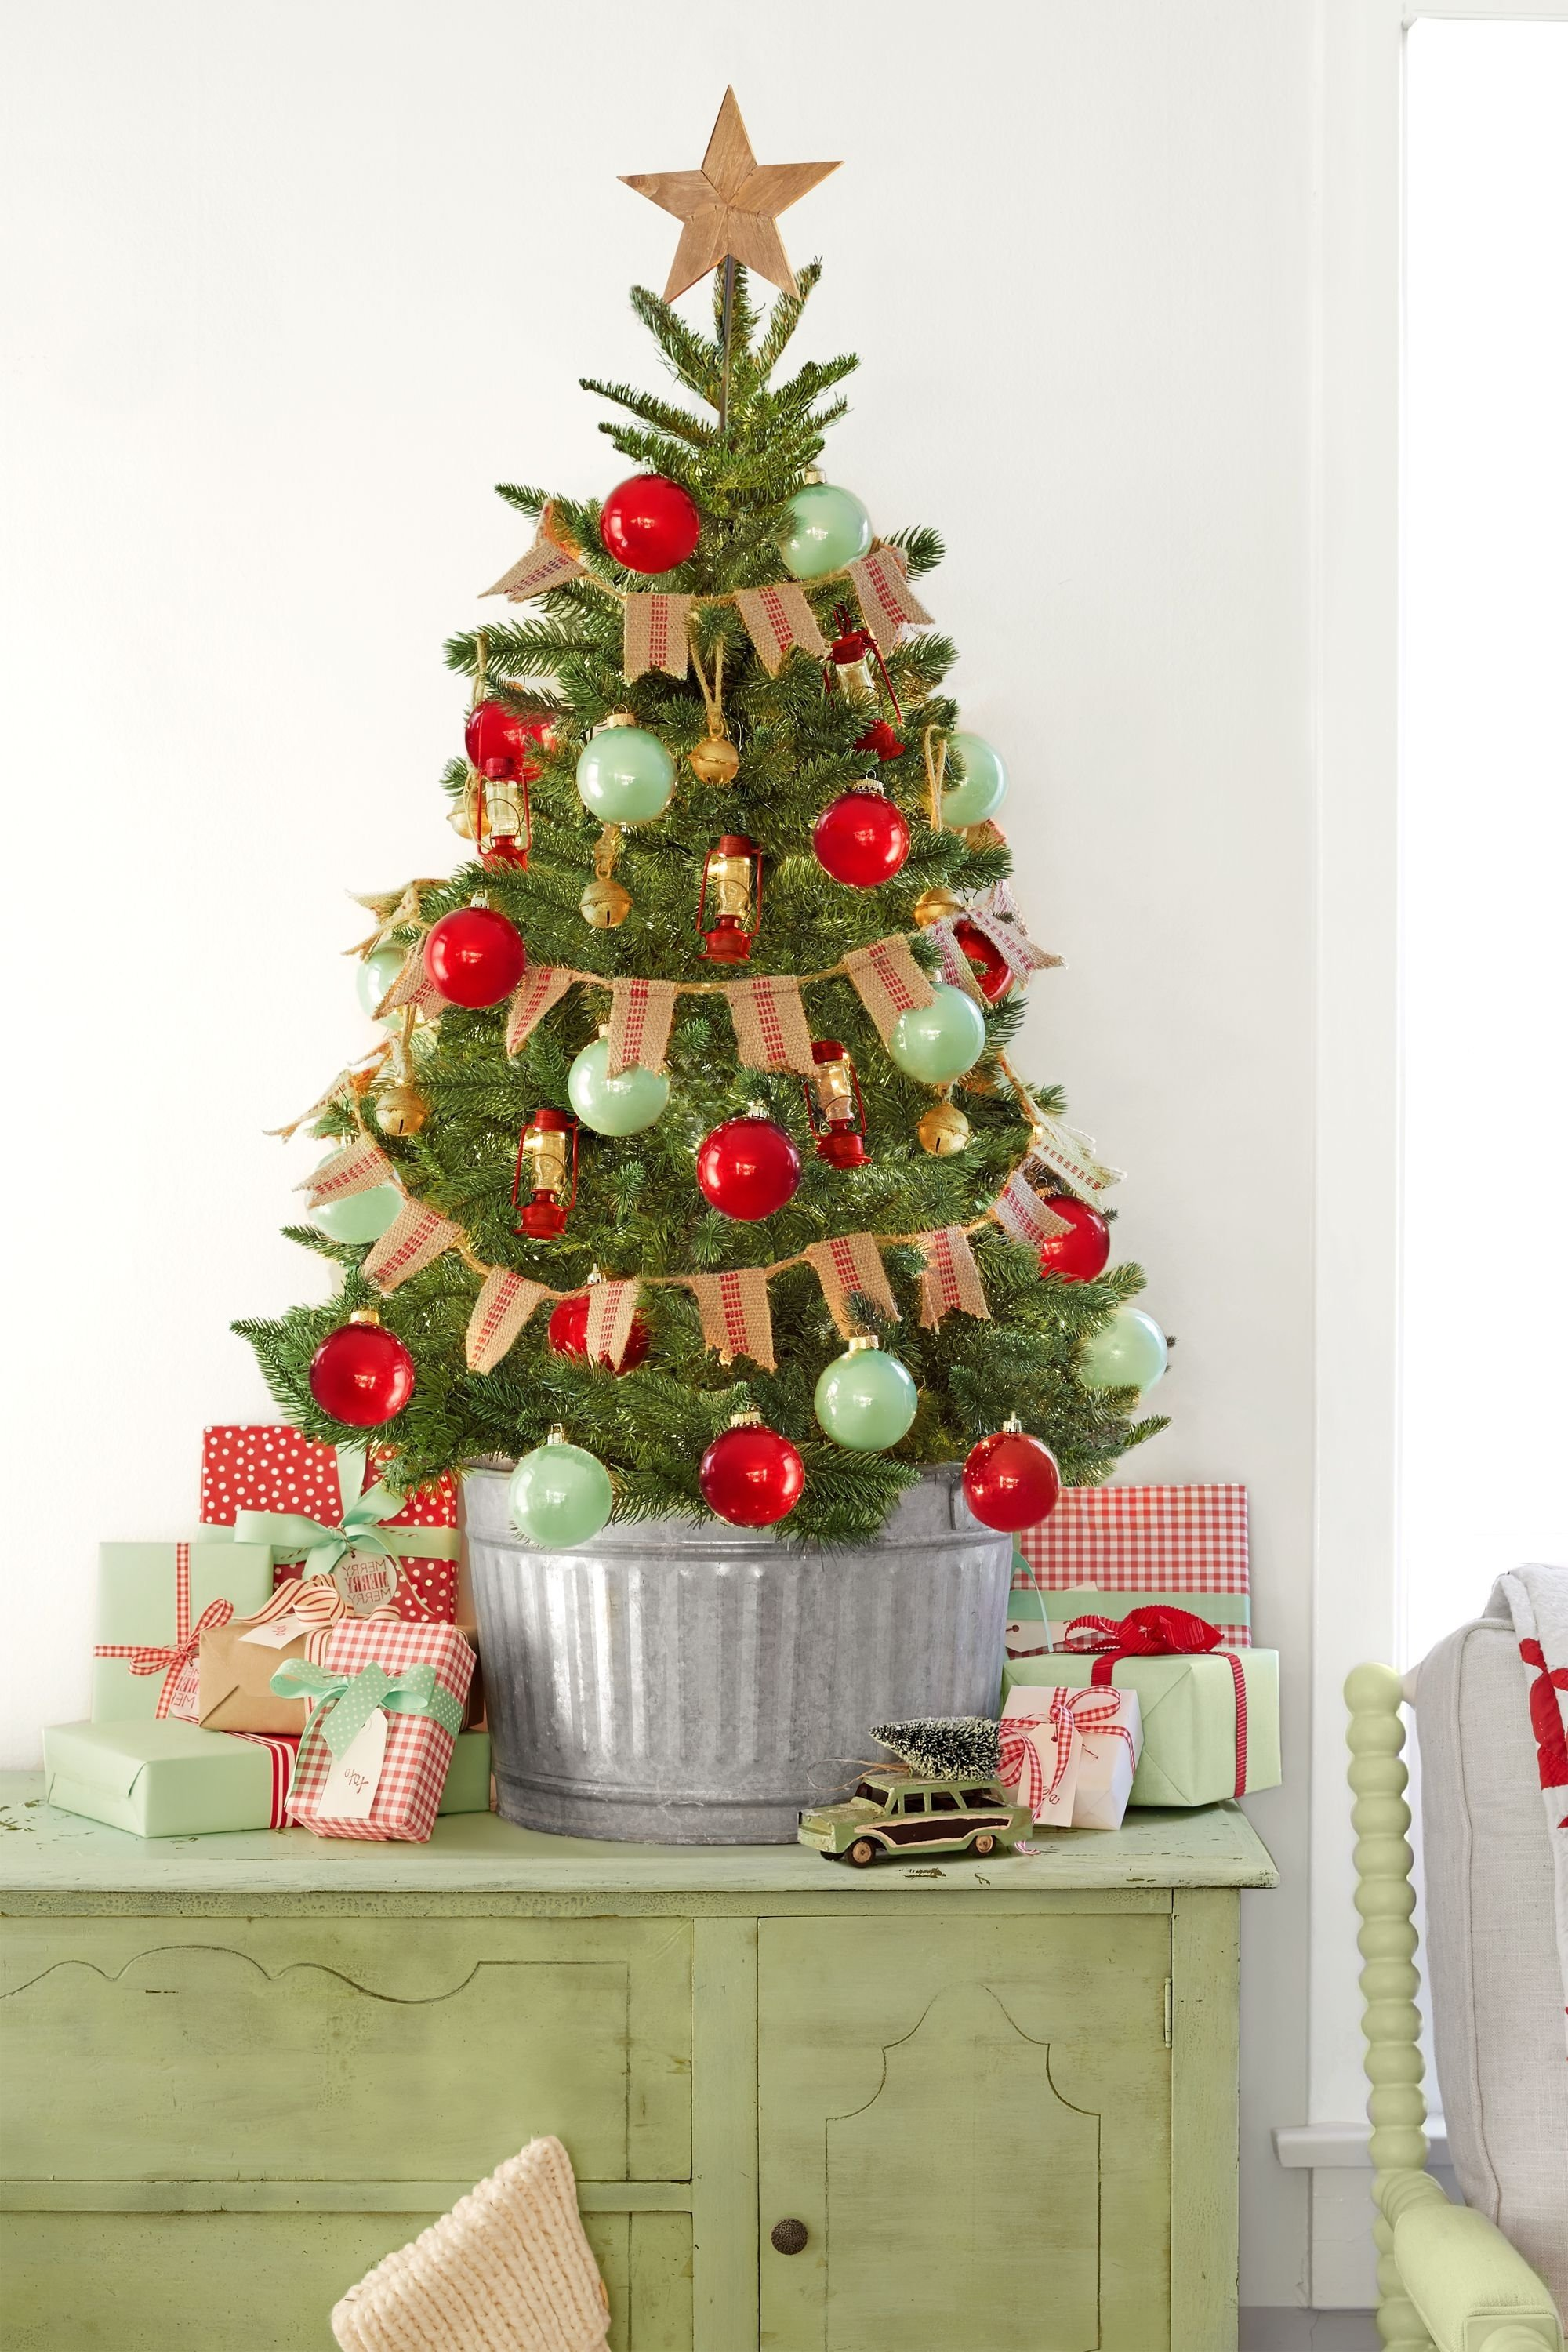 10 Ideal Ideas For Decorating Christmas Trees 60 best christmas tree decorating ideas how to decorate a 7 2020